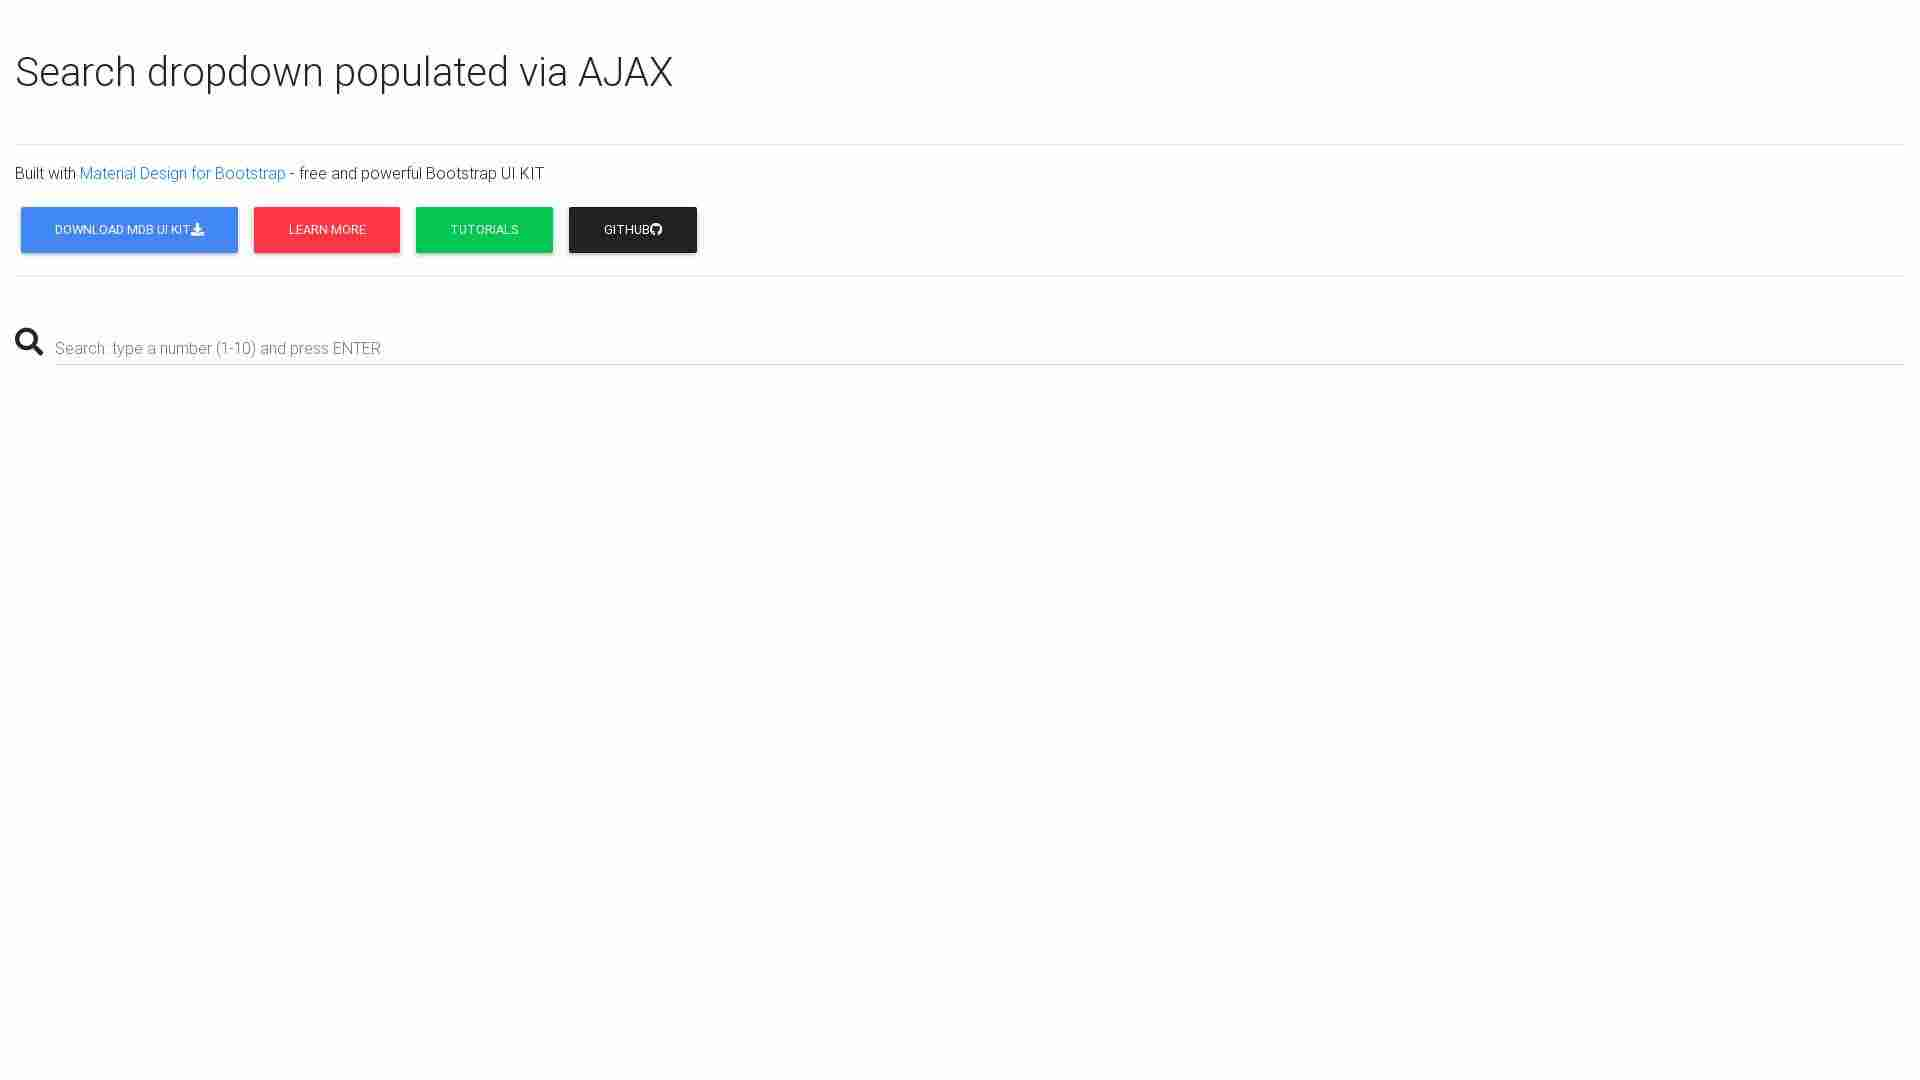 Forked from - AJAX search dropdown